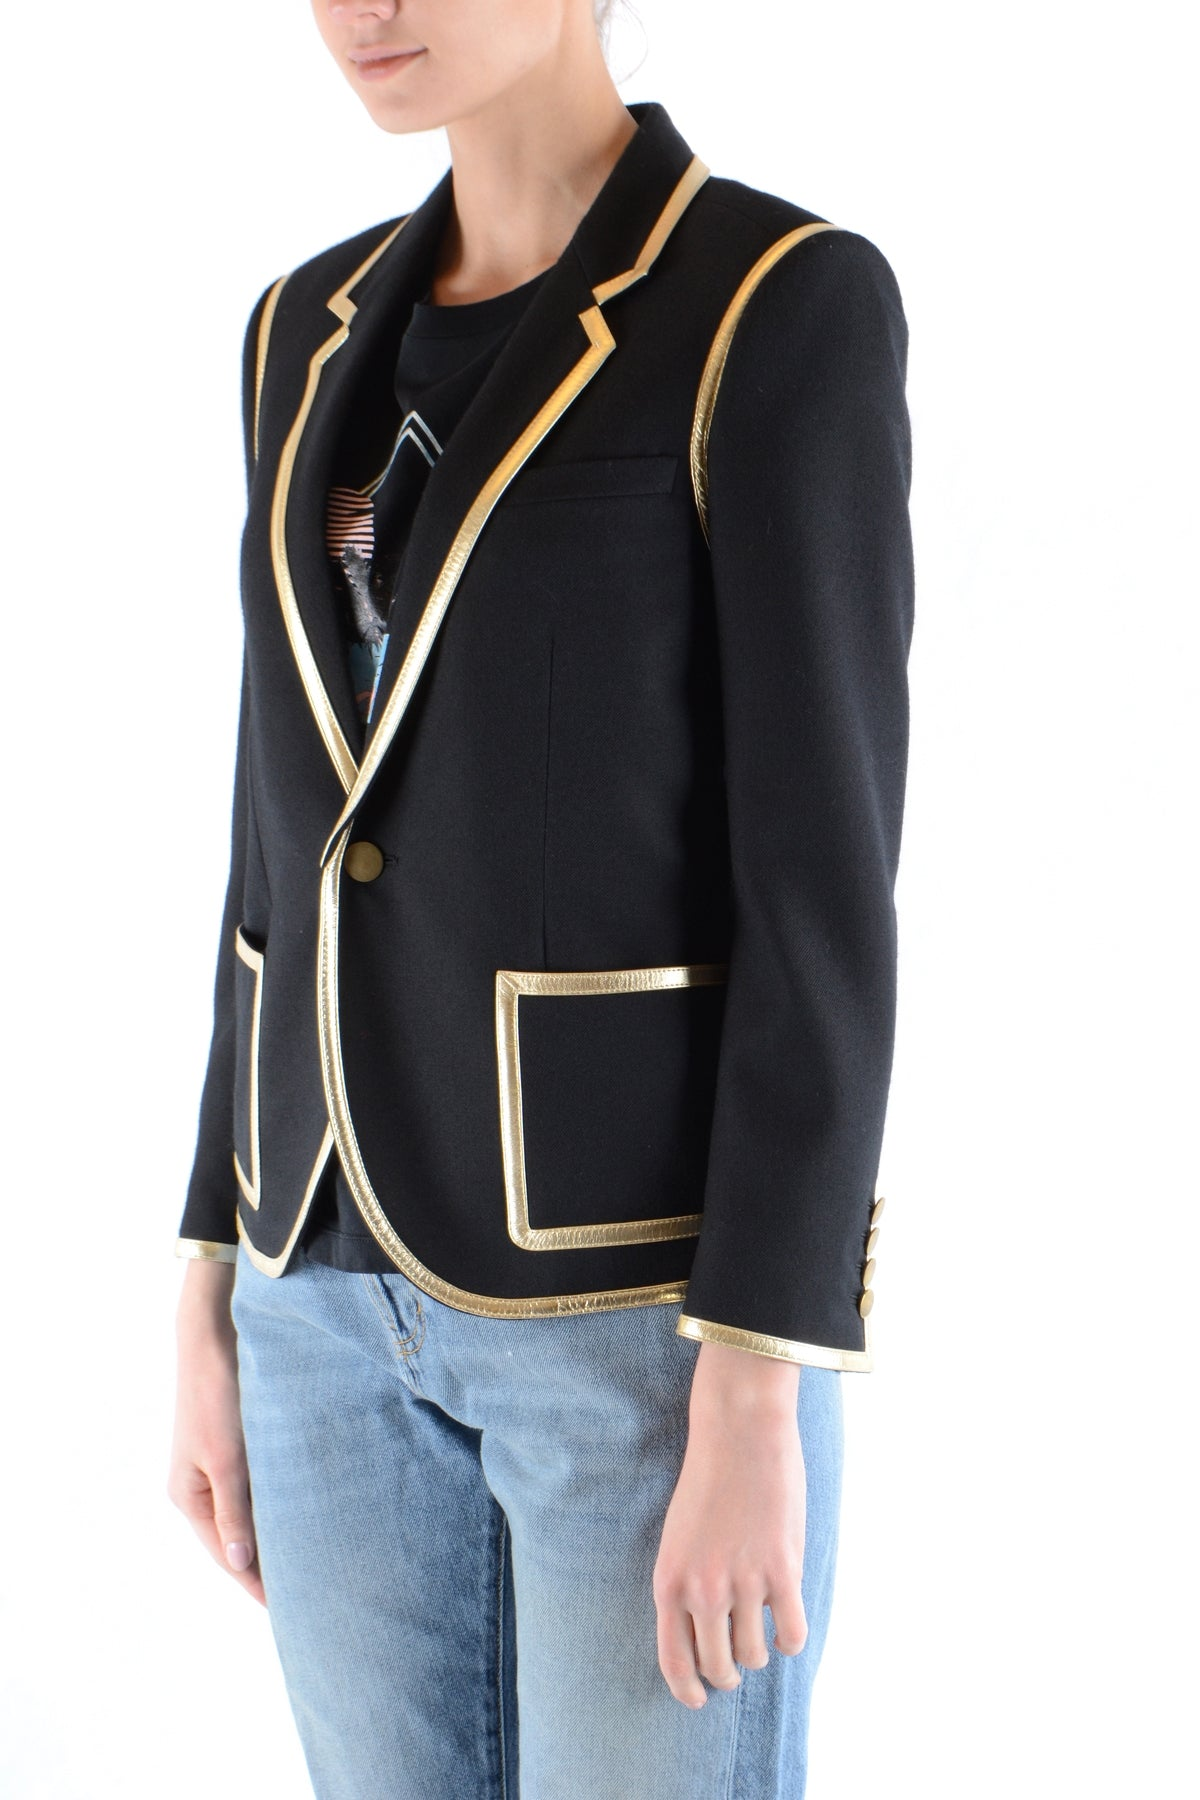 Jacket Saint Laurent-Jacket - WOMAN-Keyomi-Sook